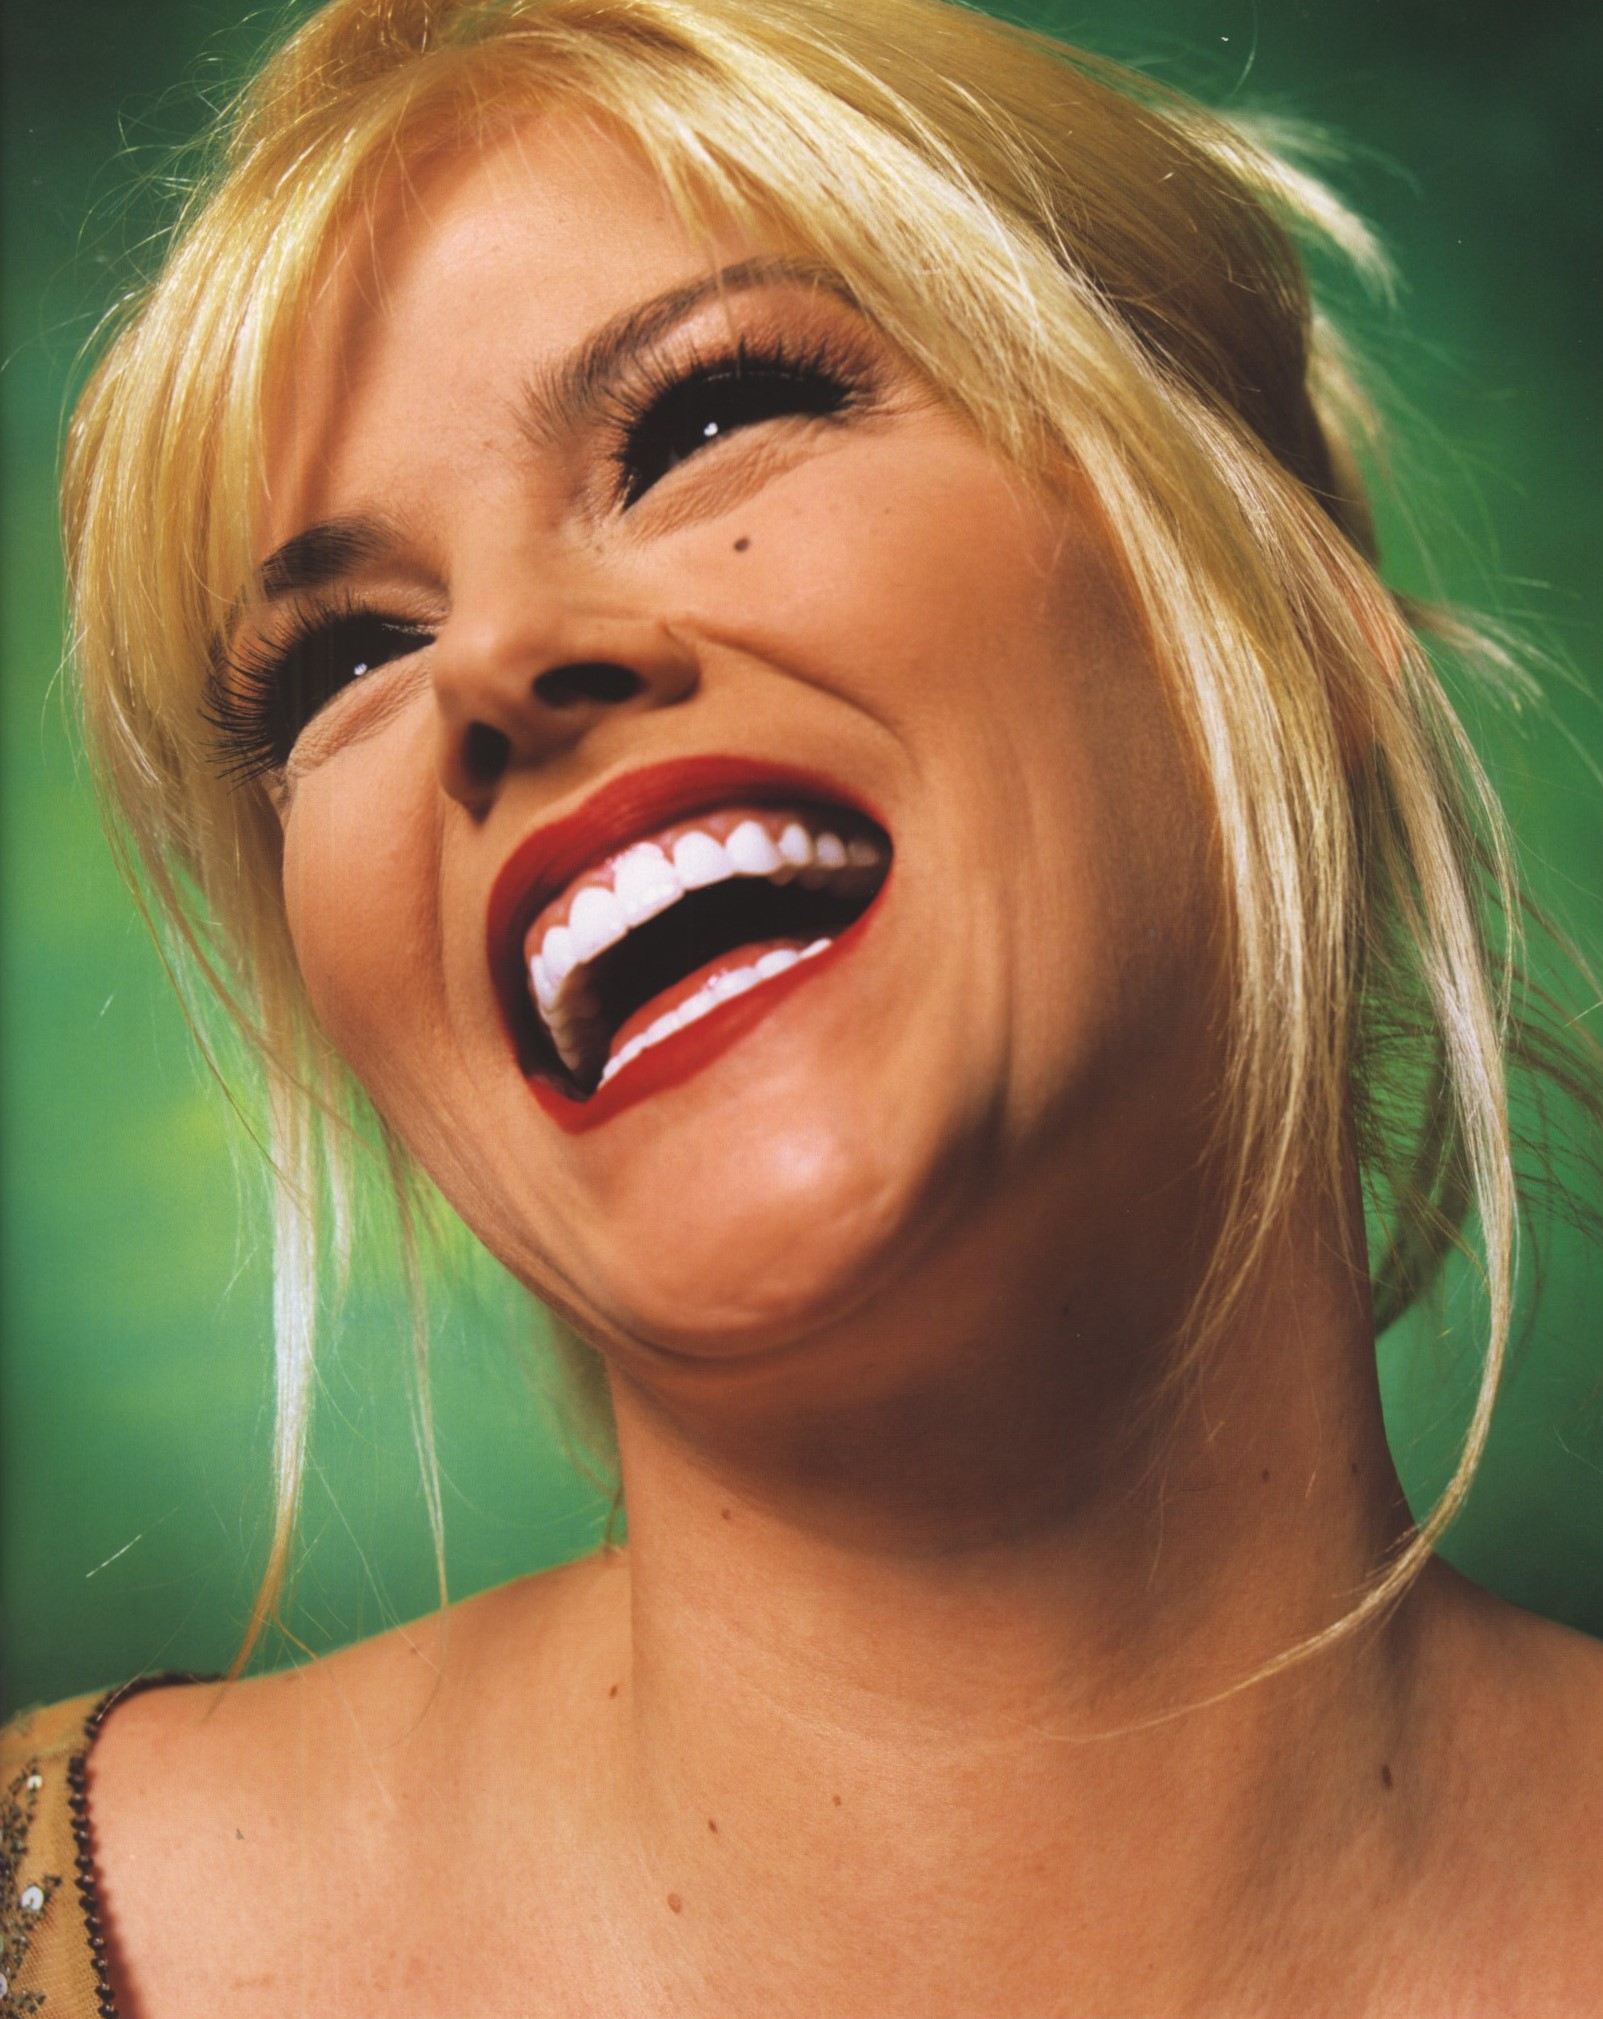 anna nicole smith 2004 photography andres serrano